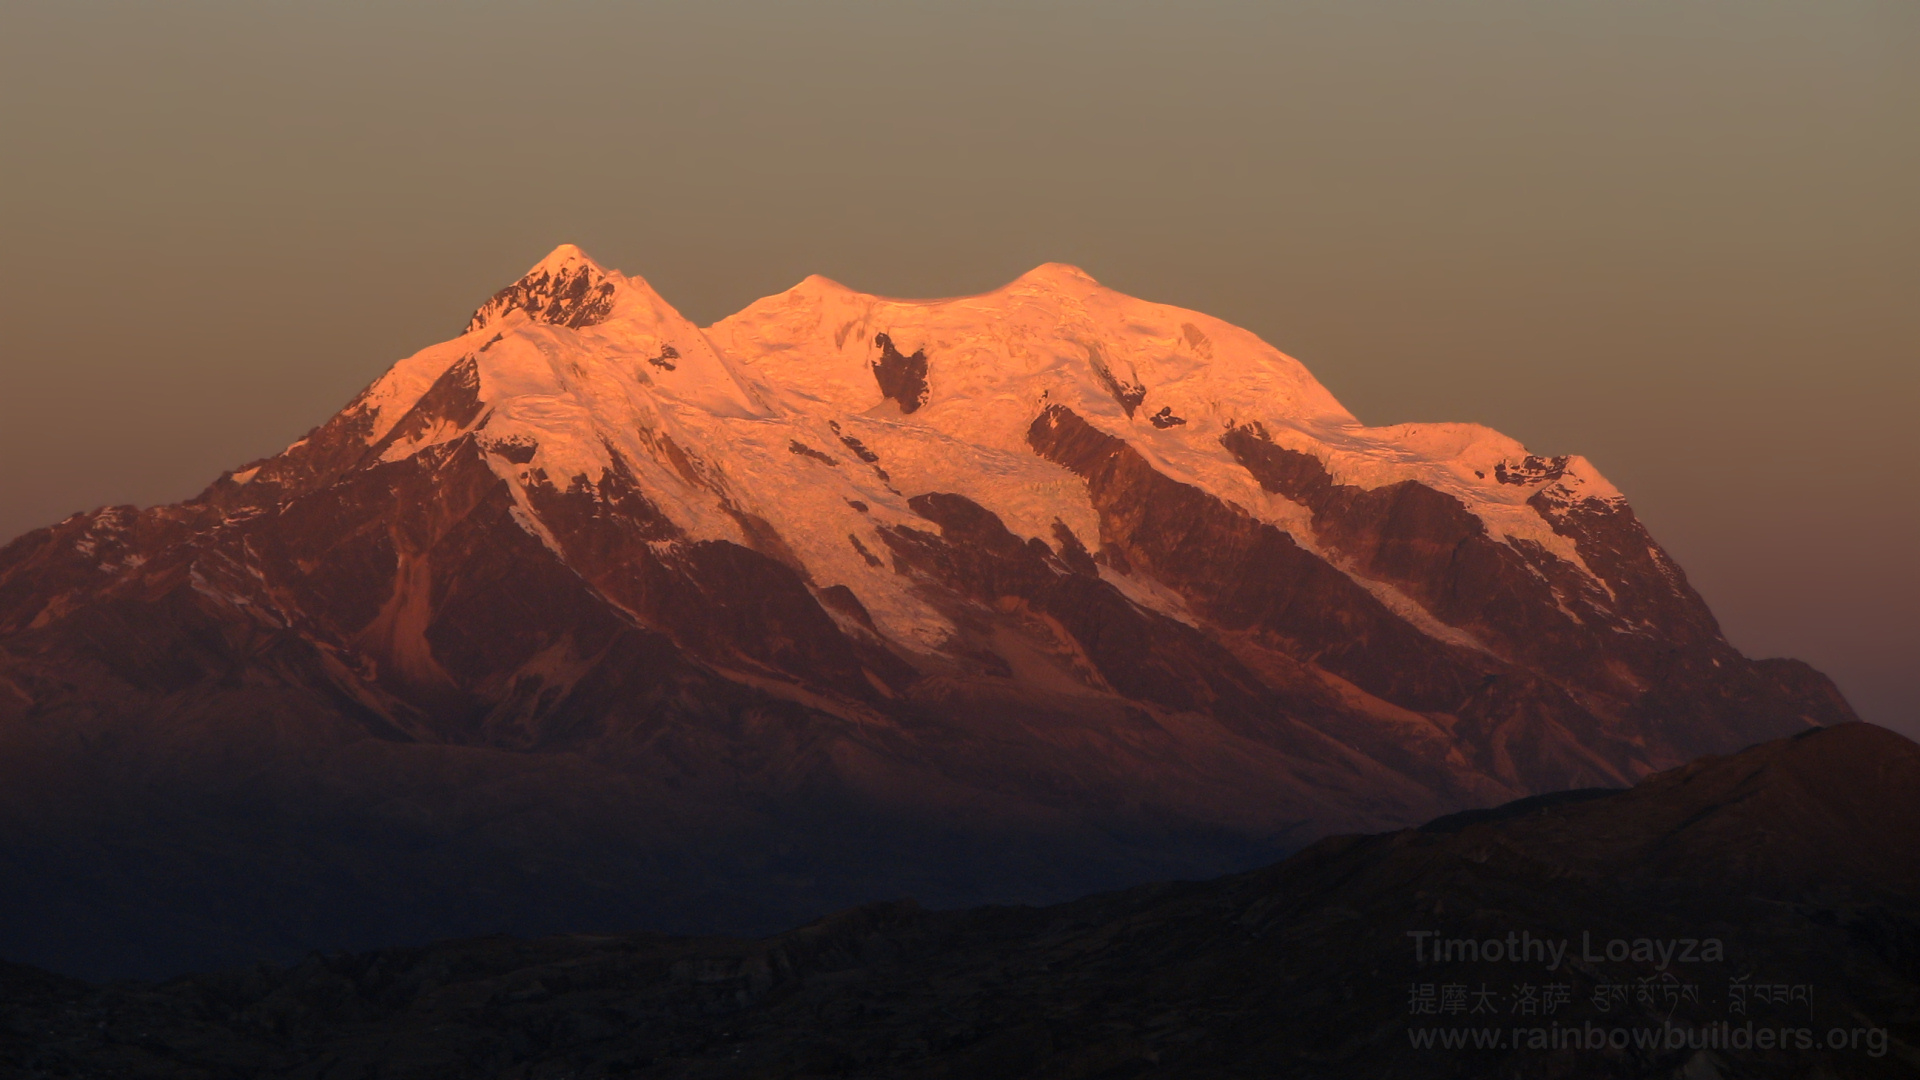 The Illimani, the mountain towering over La Paz (Bolivia), gets the last sun rays of the day.